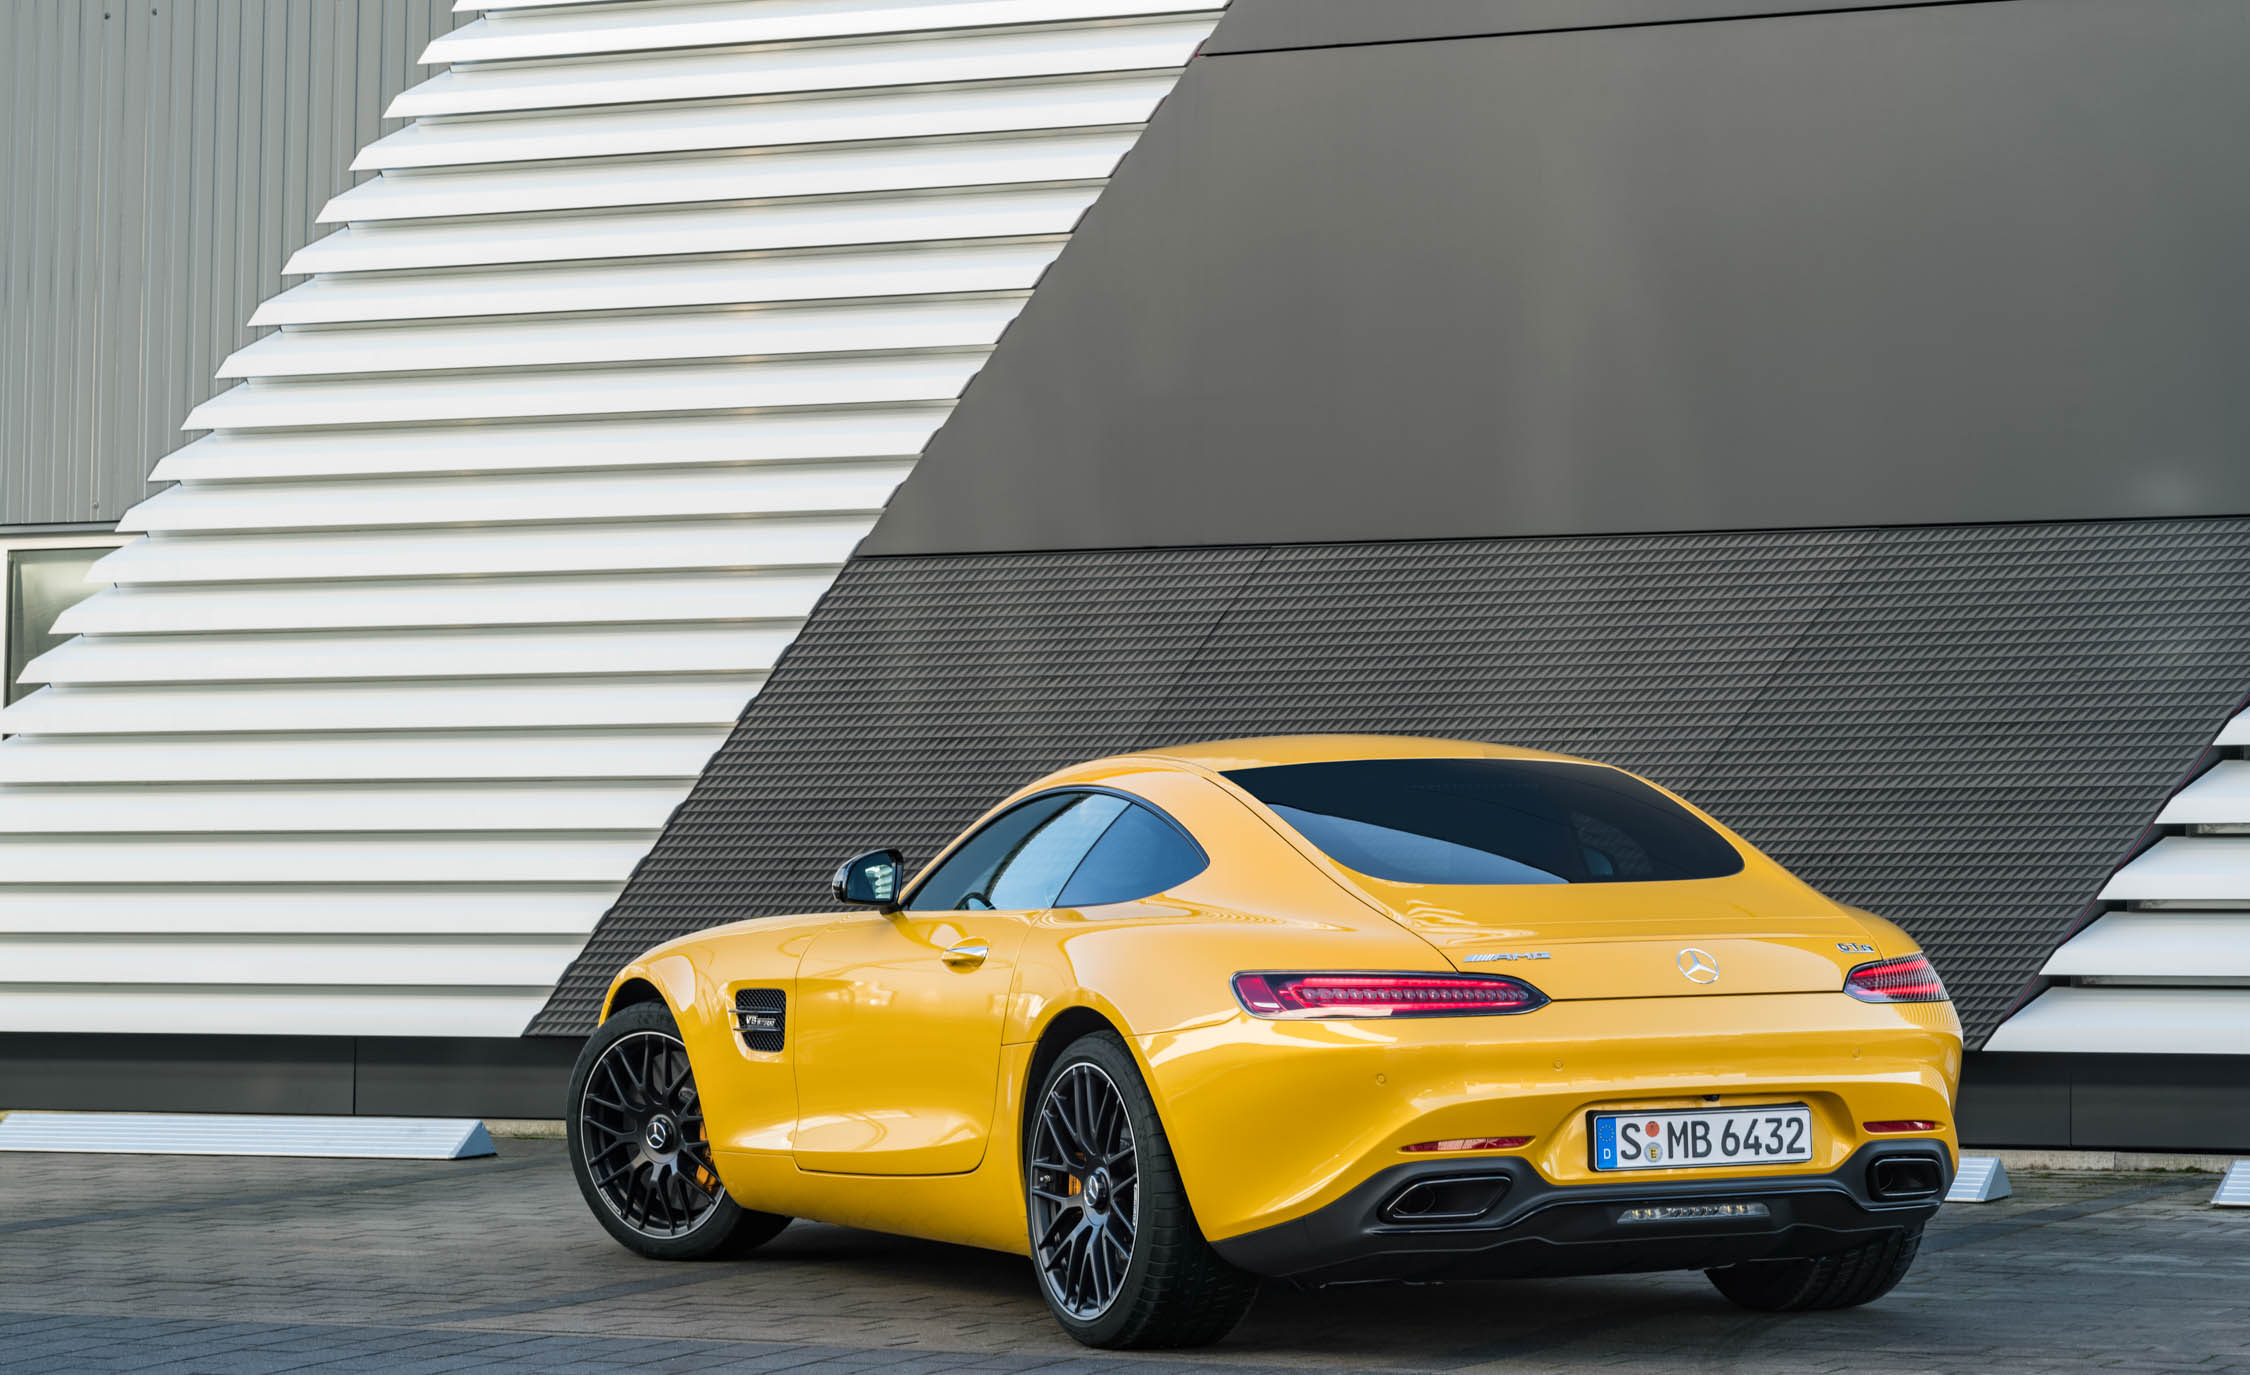 2018 Mercedes Amg Gt S Exterior Rear And Side (Photo 20 of 23)